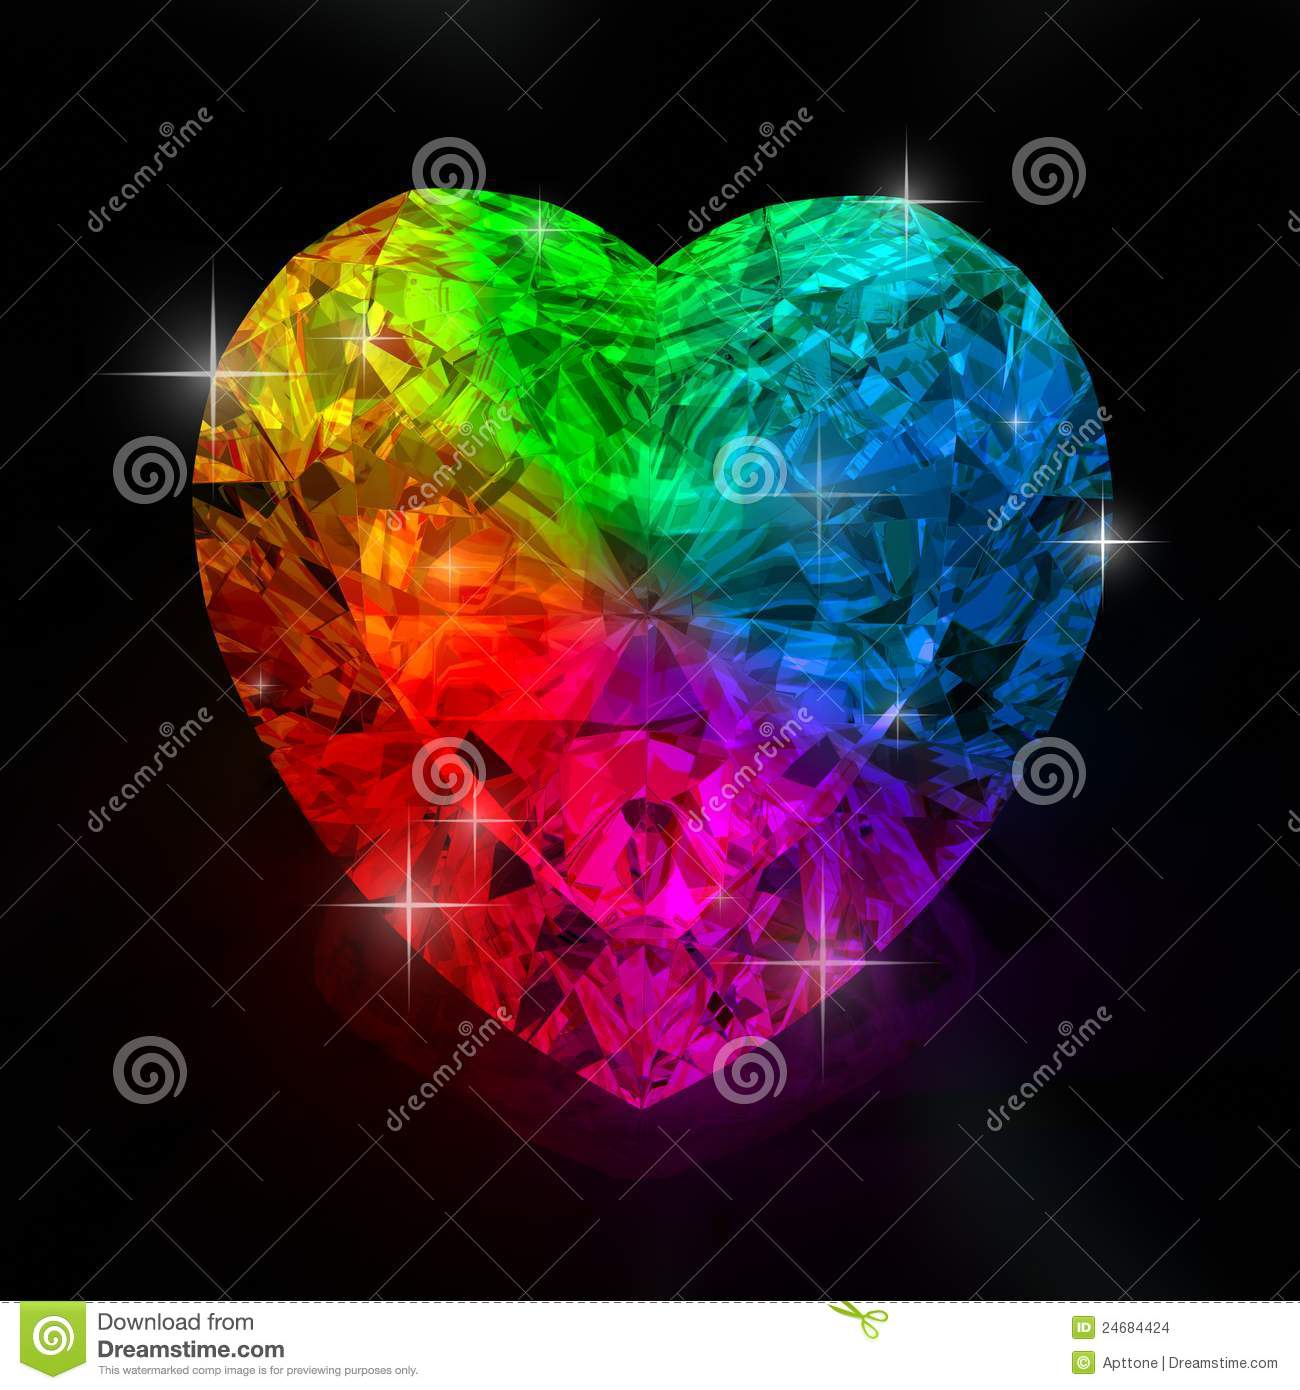 rainbow heart shape diamond beautiful shape emerald image